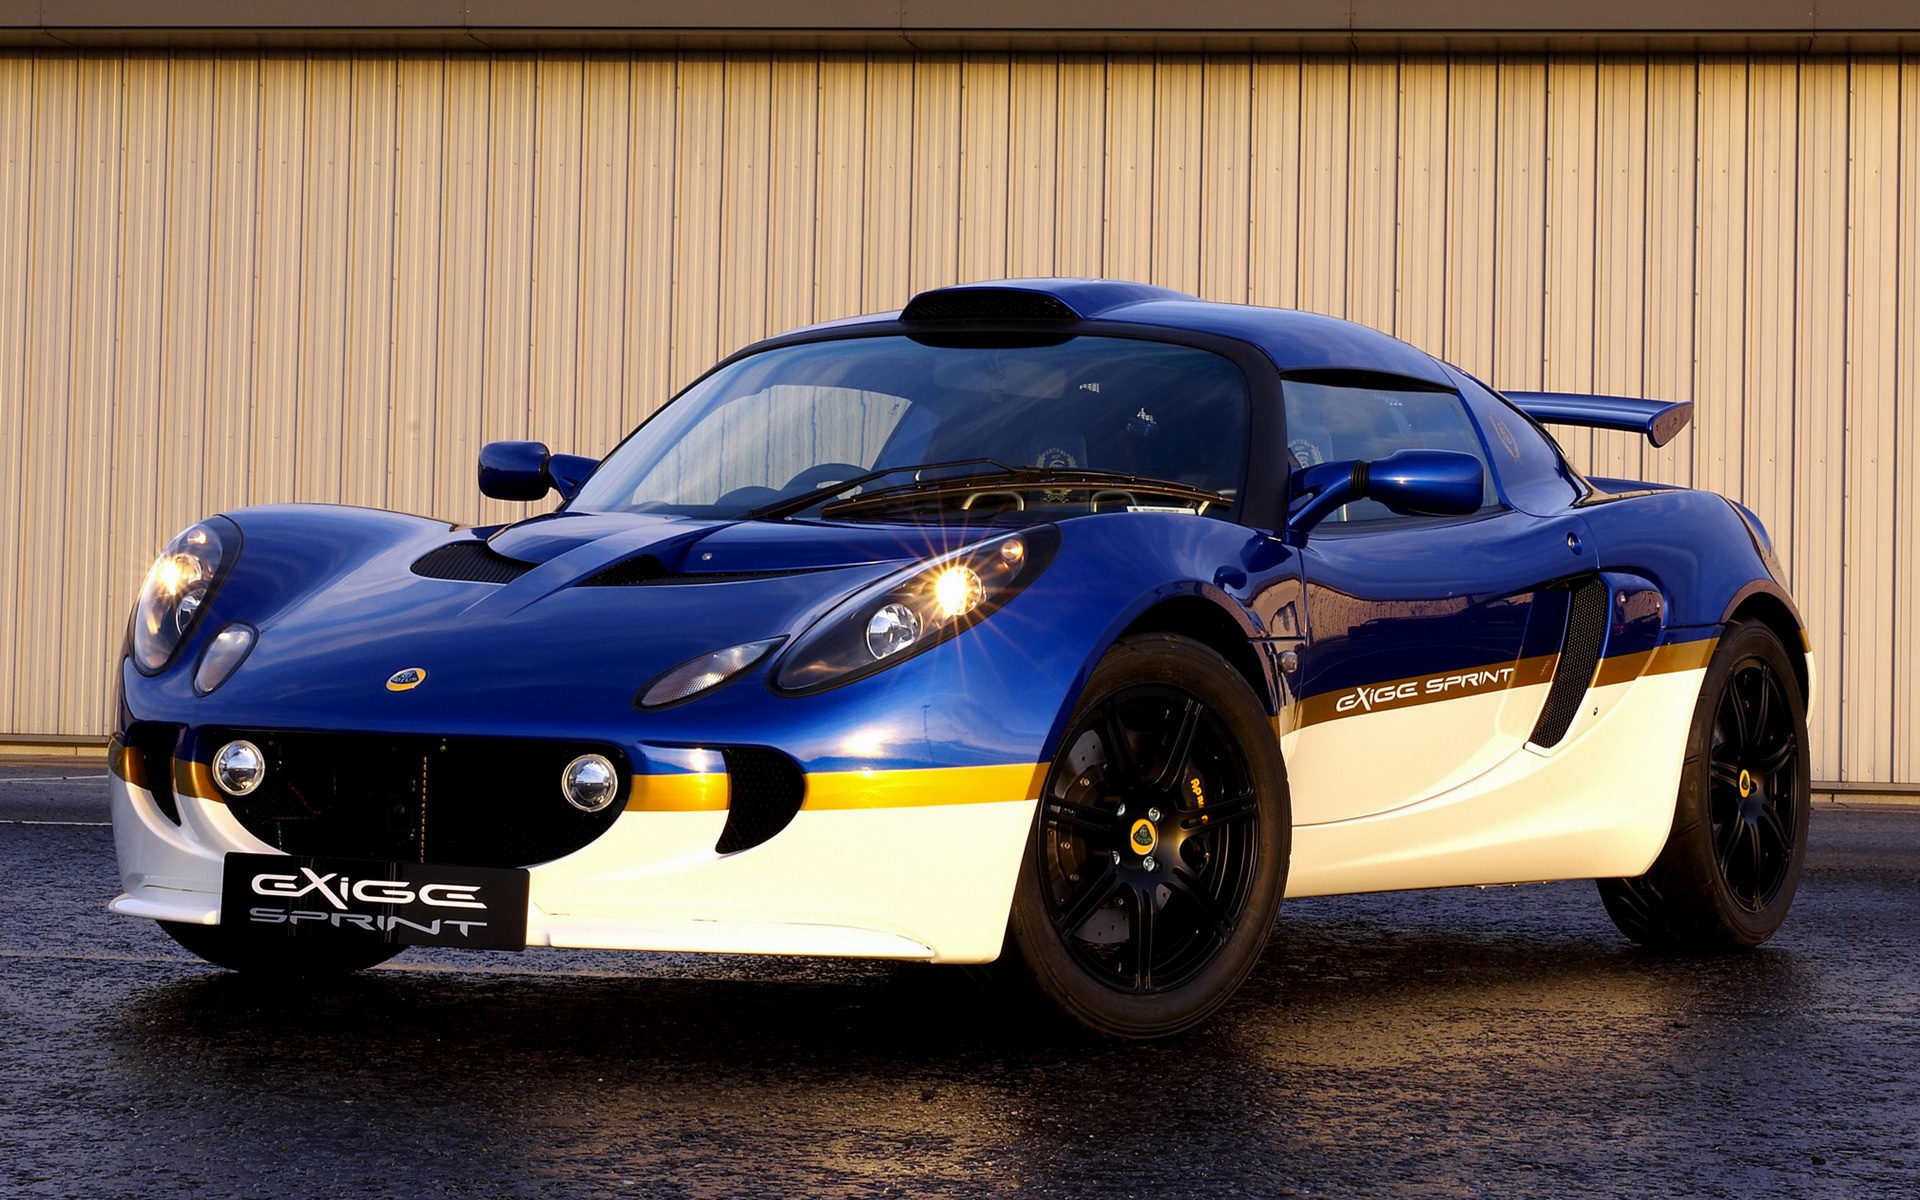 https://www.carpixel.net/w/de9b36dcee059a866848ffb73a01b9a0/lotus-exige-sprint-car-wallpaper-42088.jpg